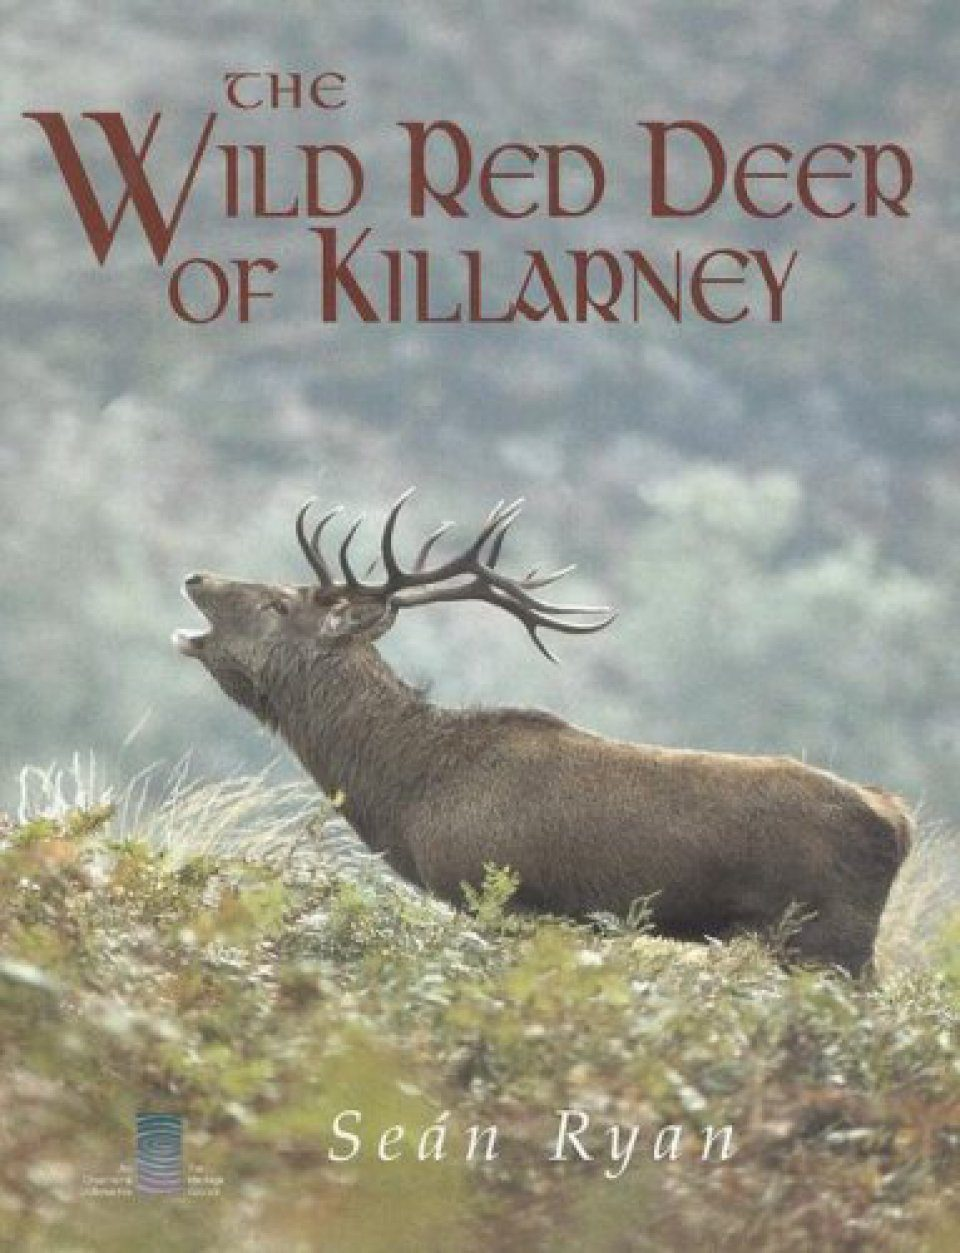 The Wild Red Deer of Killarney